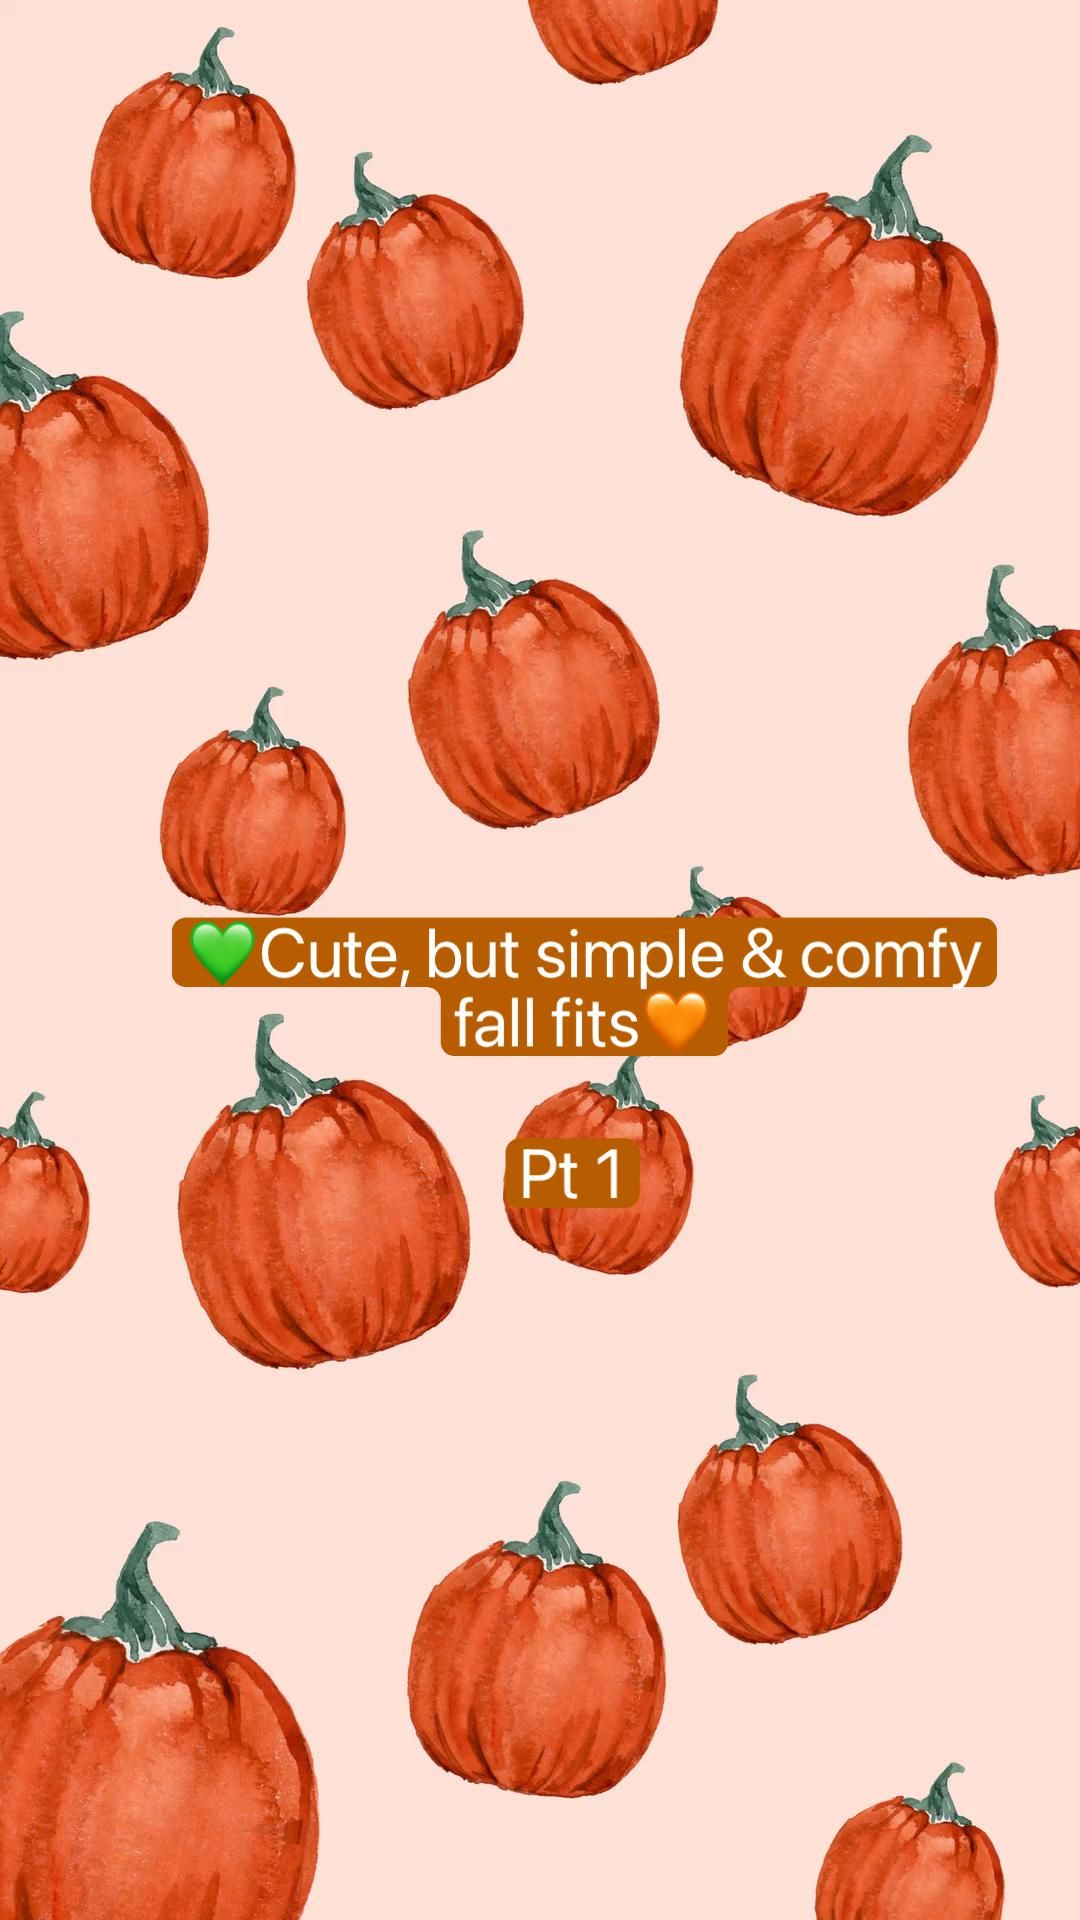 💚Cute, but simple  & comfy fall fits🧡